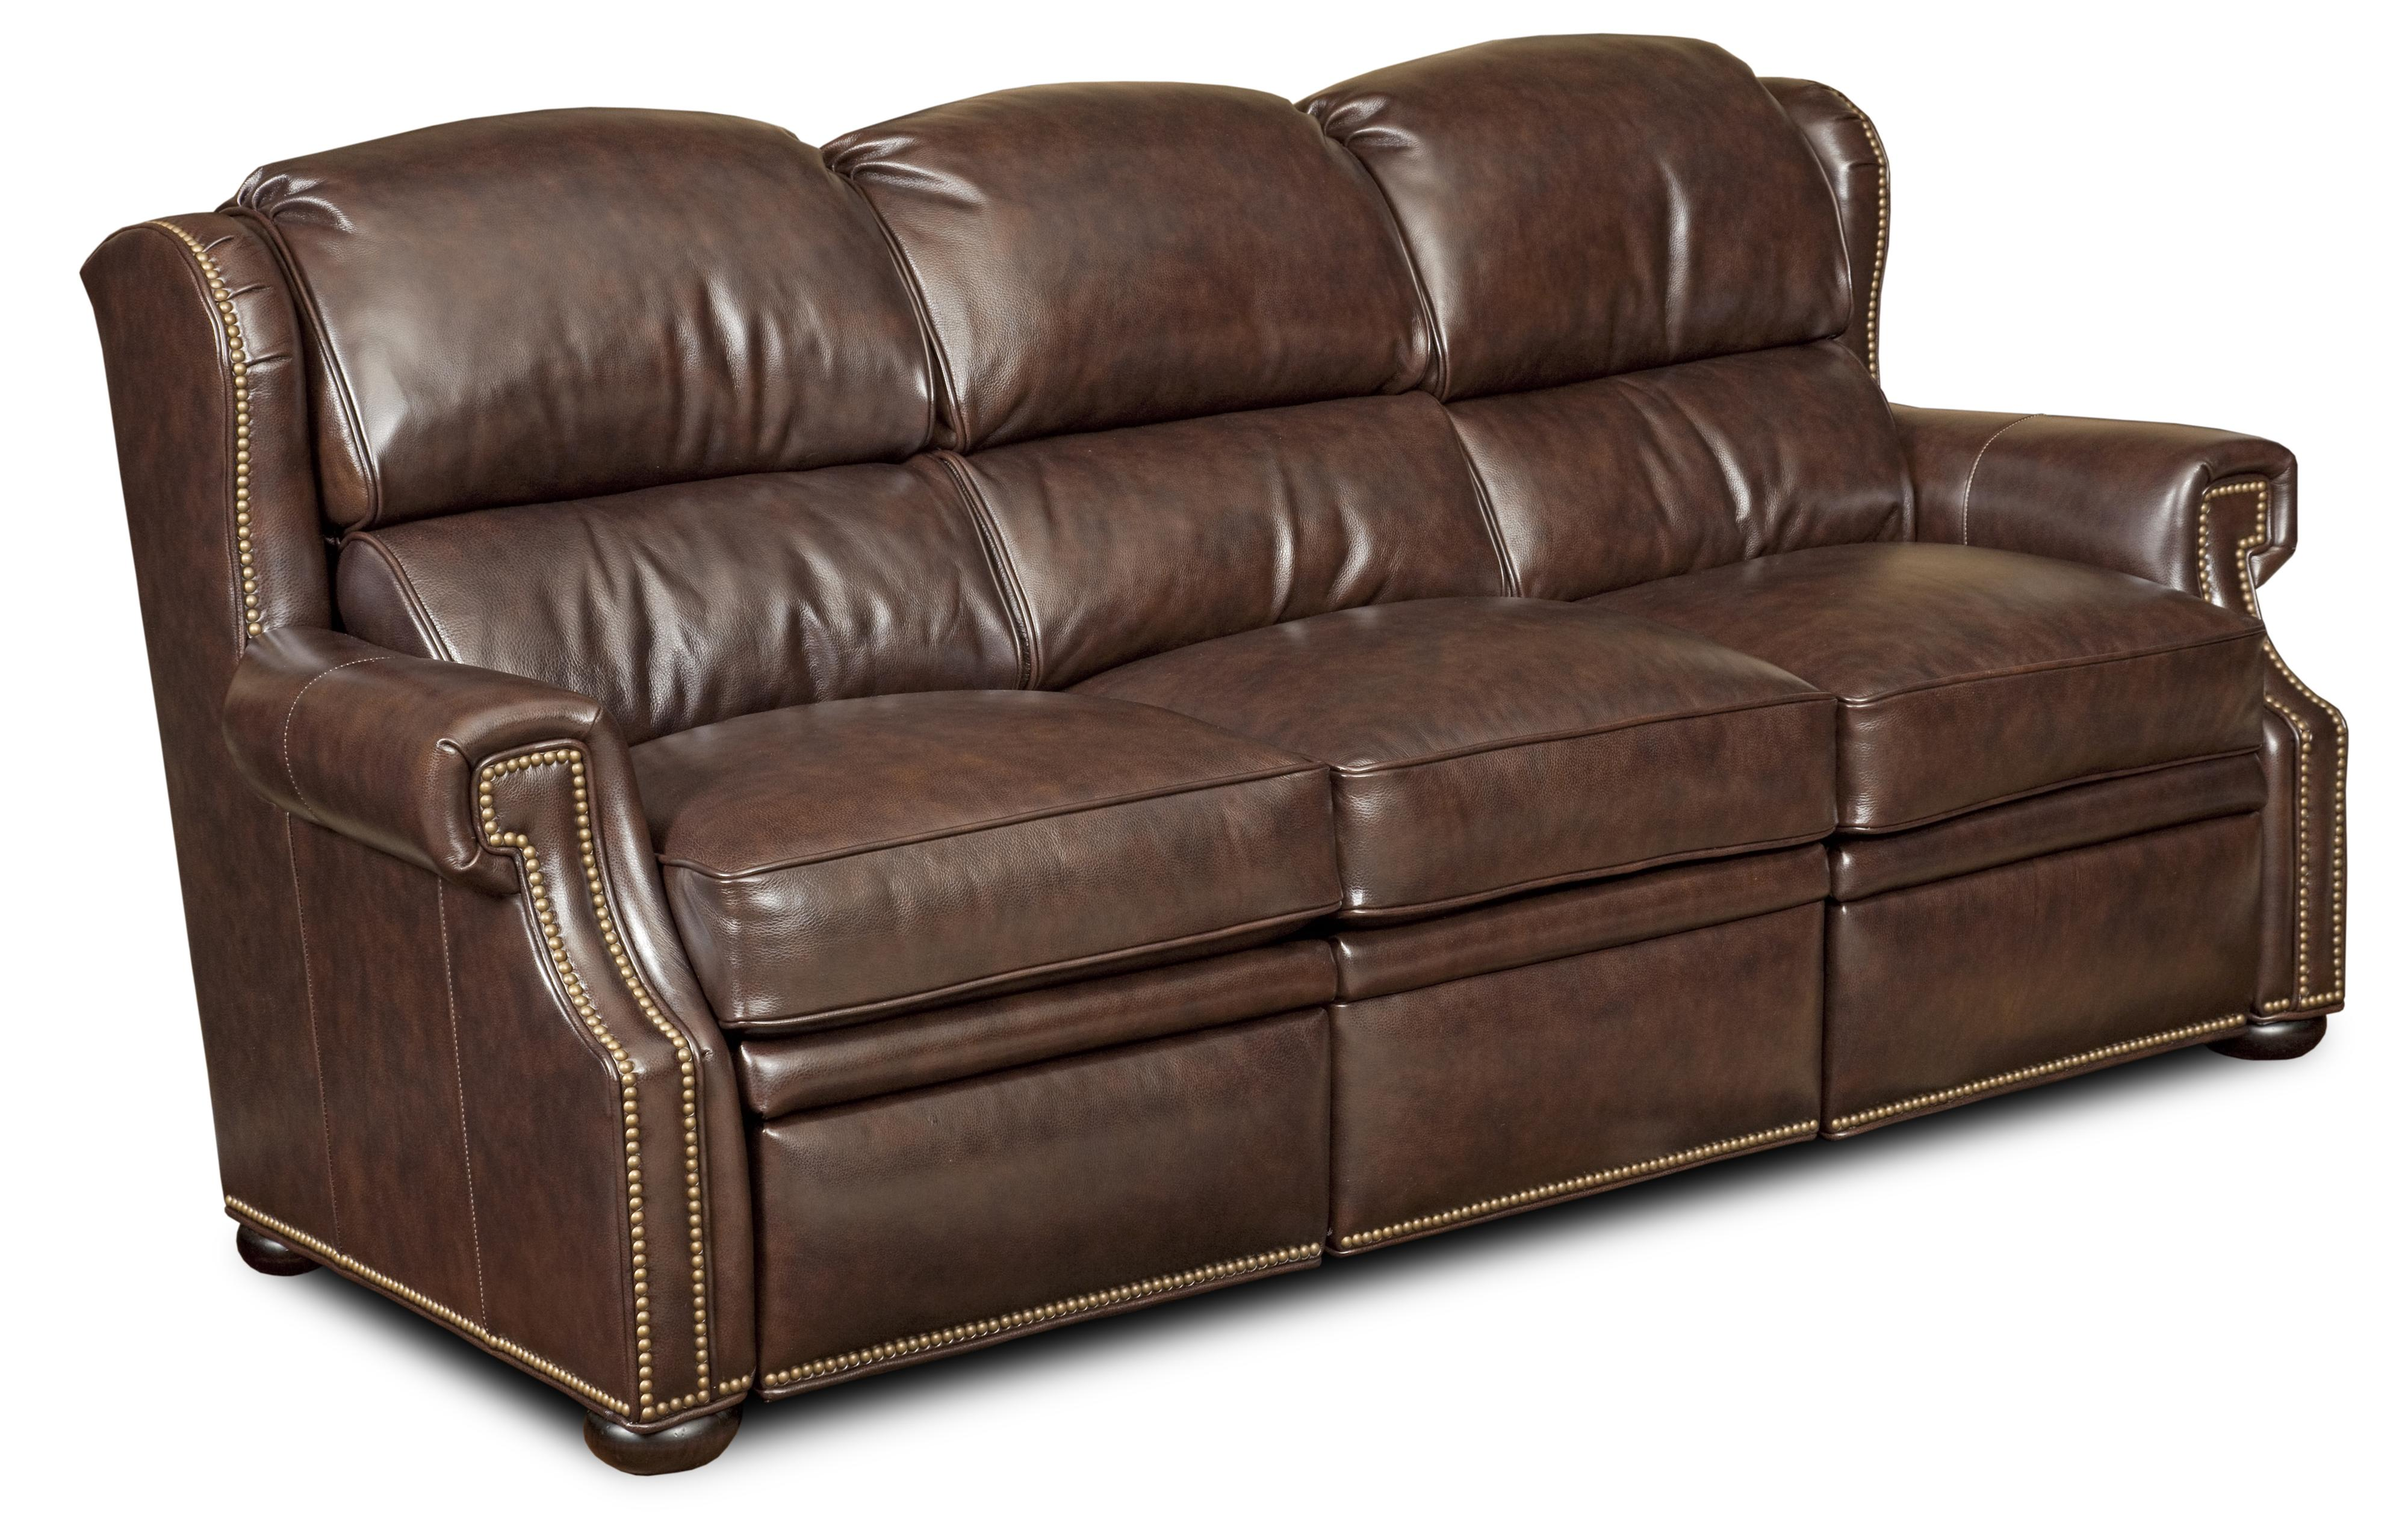 Reid Traditional Dual Reclining Sofa With Nailheads And Bun Feet By  Bradington Young